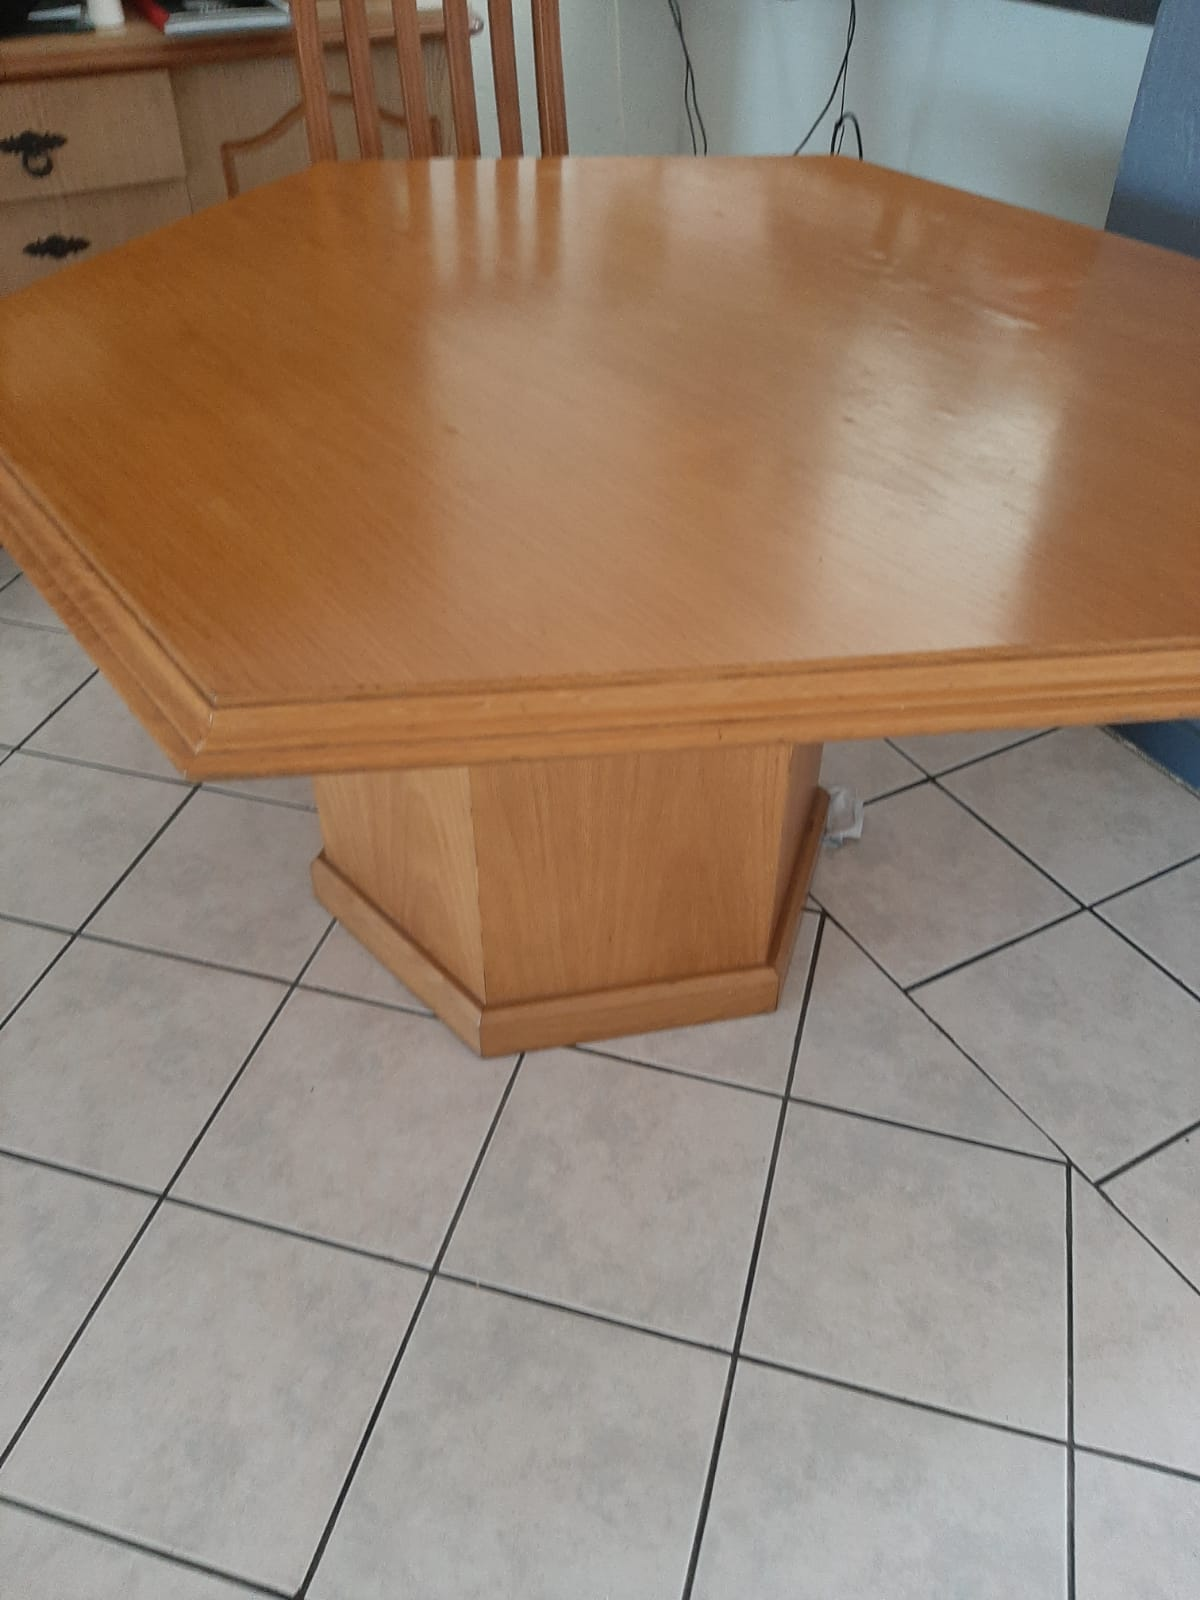 Wooden Furniture for Sale in Johannesburg